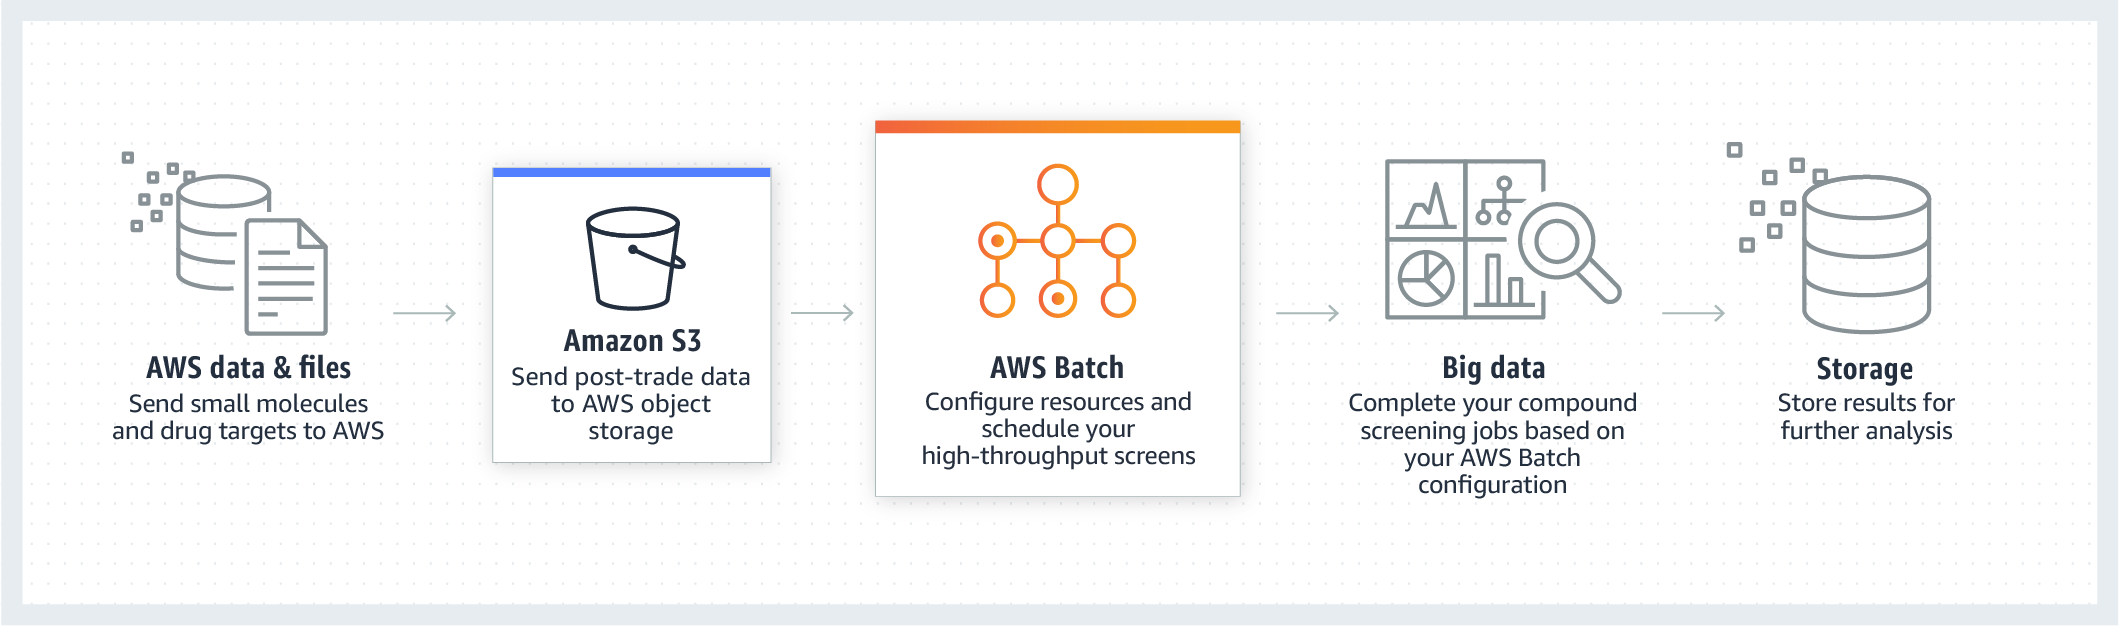 product-page-diagram-AWS-Batch_life-sciences